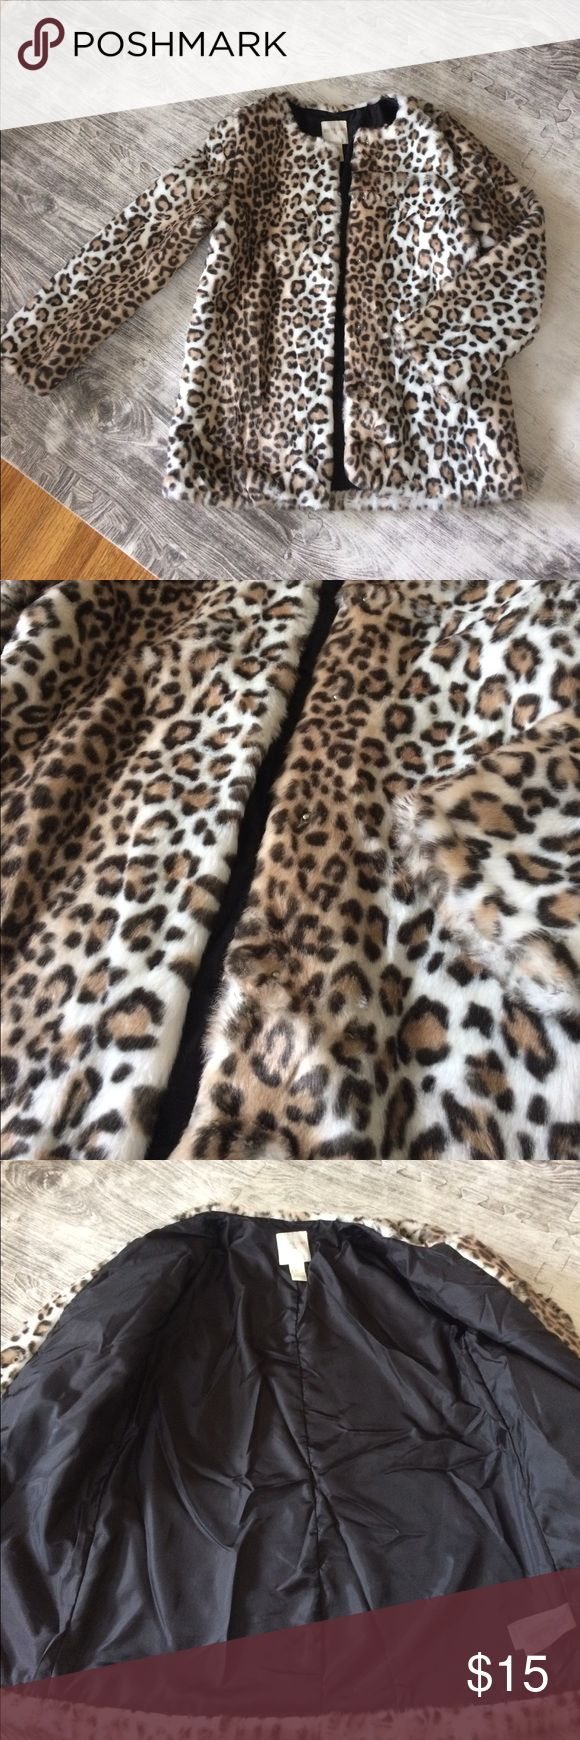 Leopard faux fur jacket Leopard faux fur jacket. SUPER soft! In perfect condition. Never worn. NWOT. Size girls L but would fit a women's XS Jackets & Coats